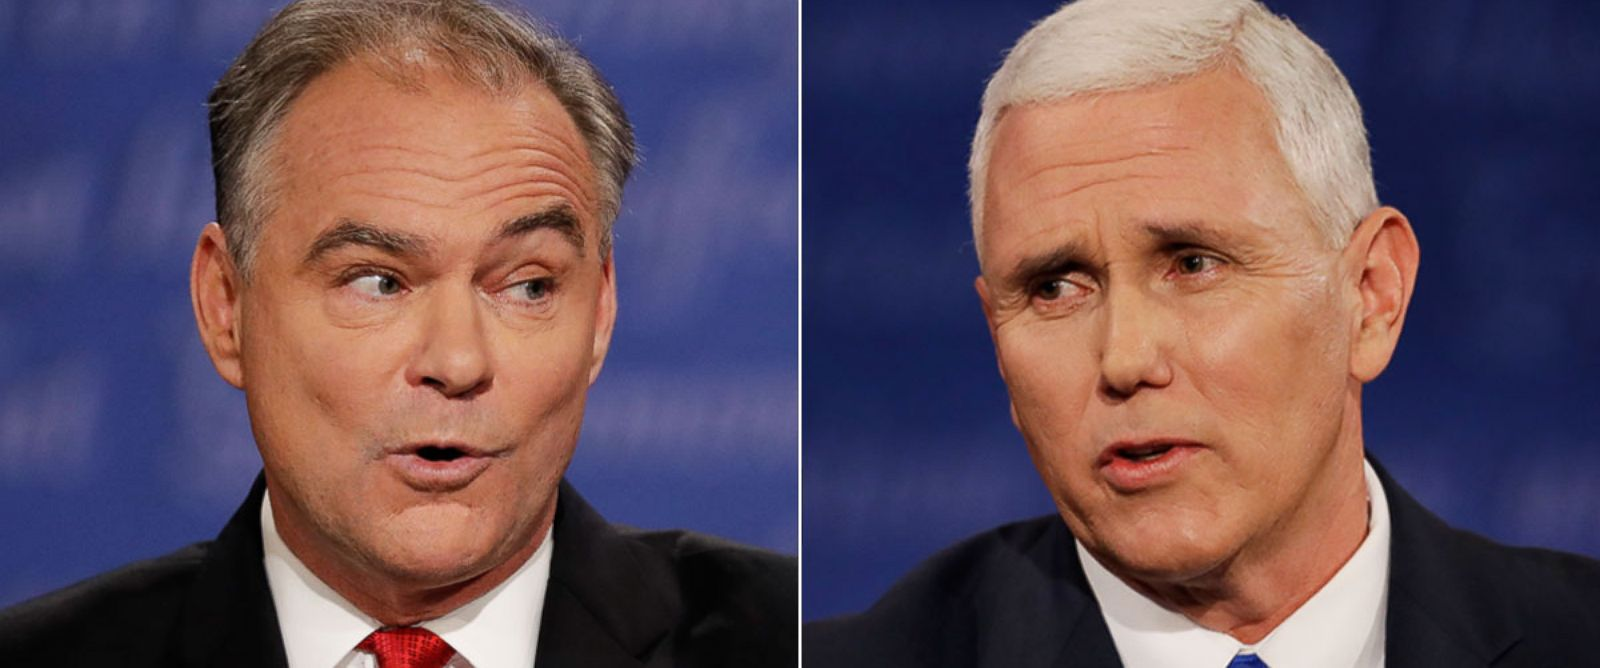 PHOTO: Republican vice-presidential nominee Gov. Mike Pence and Democratic vice-presidential nominee Sen. Tim Kaine during the vice-presidential debate at Longwood University in Farmville, Va., Oct. 4, 2016.